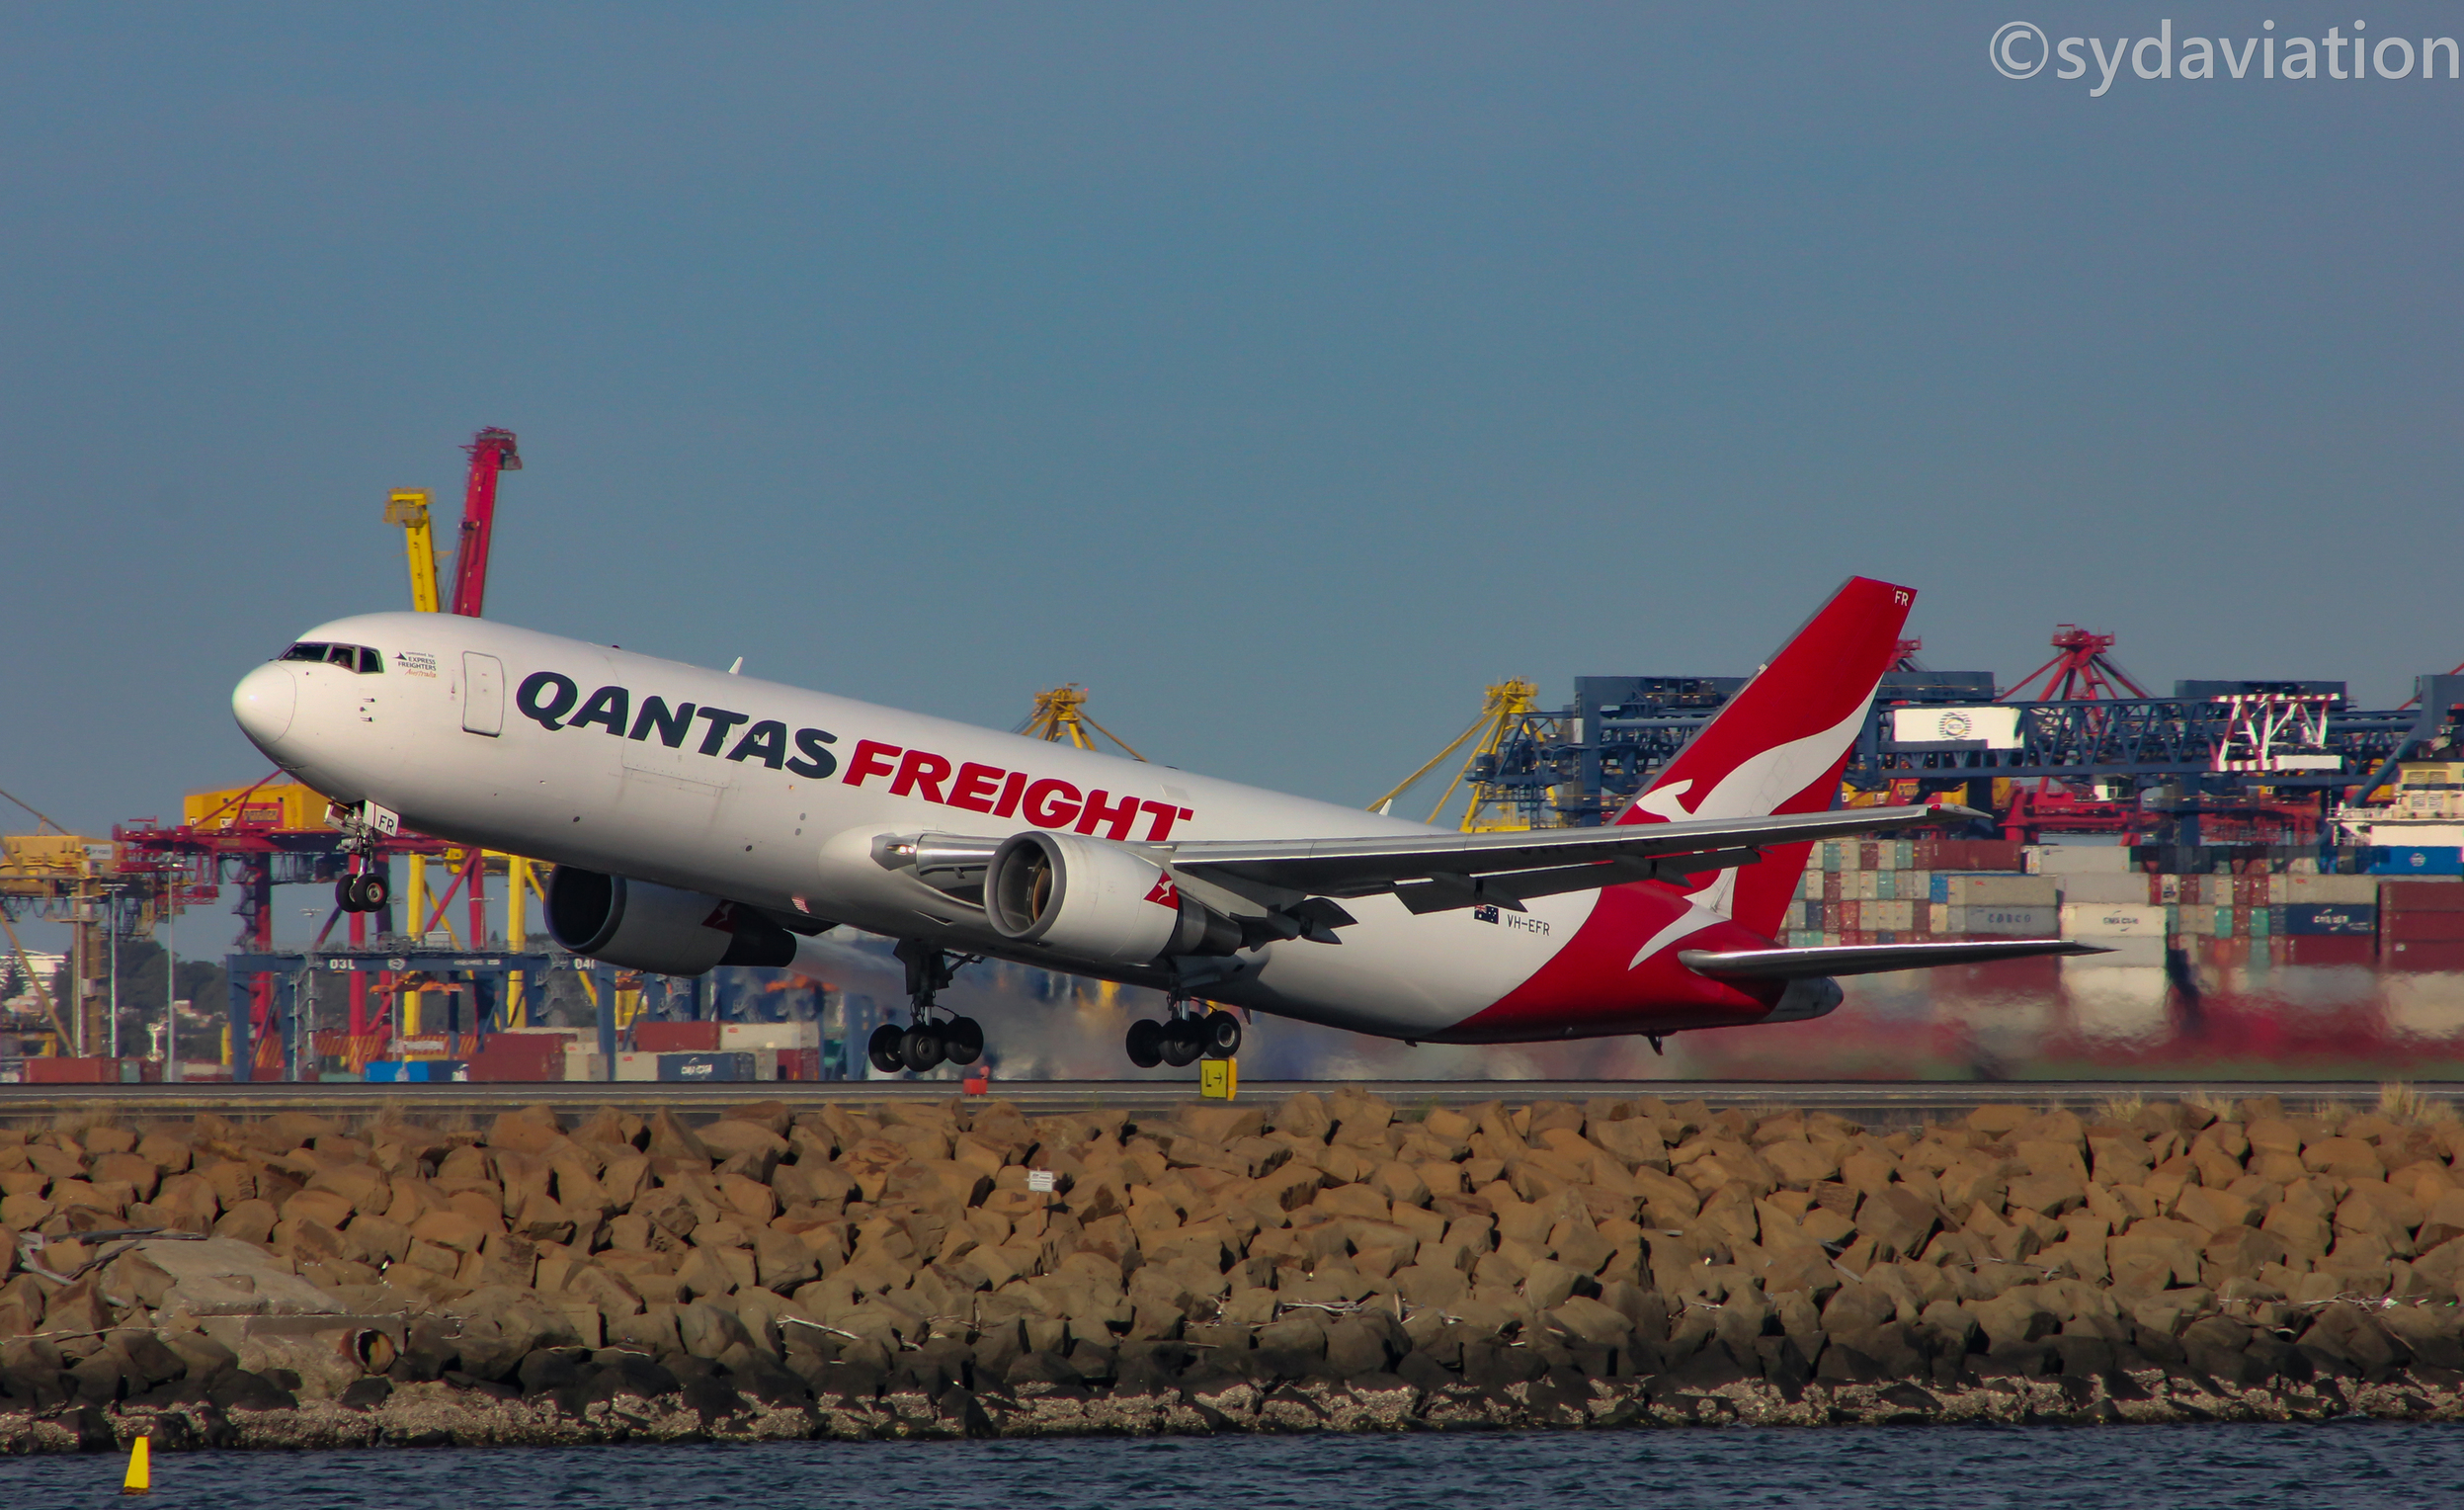 Qantas Freight 767 (1 of 1)